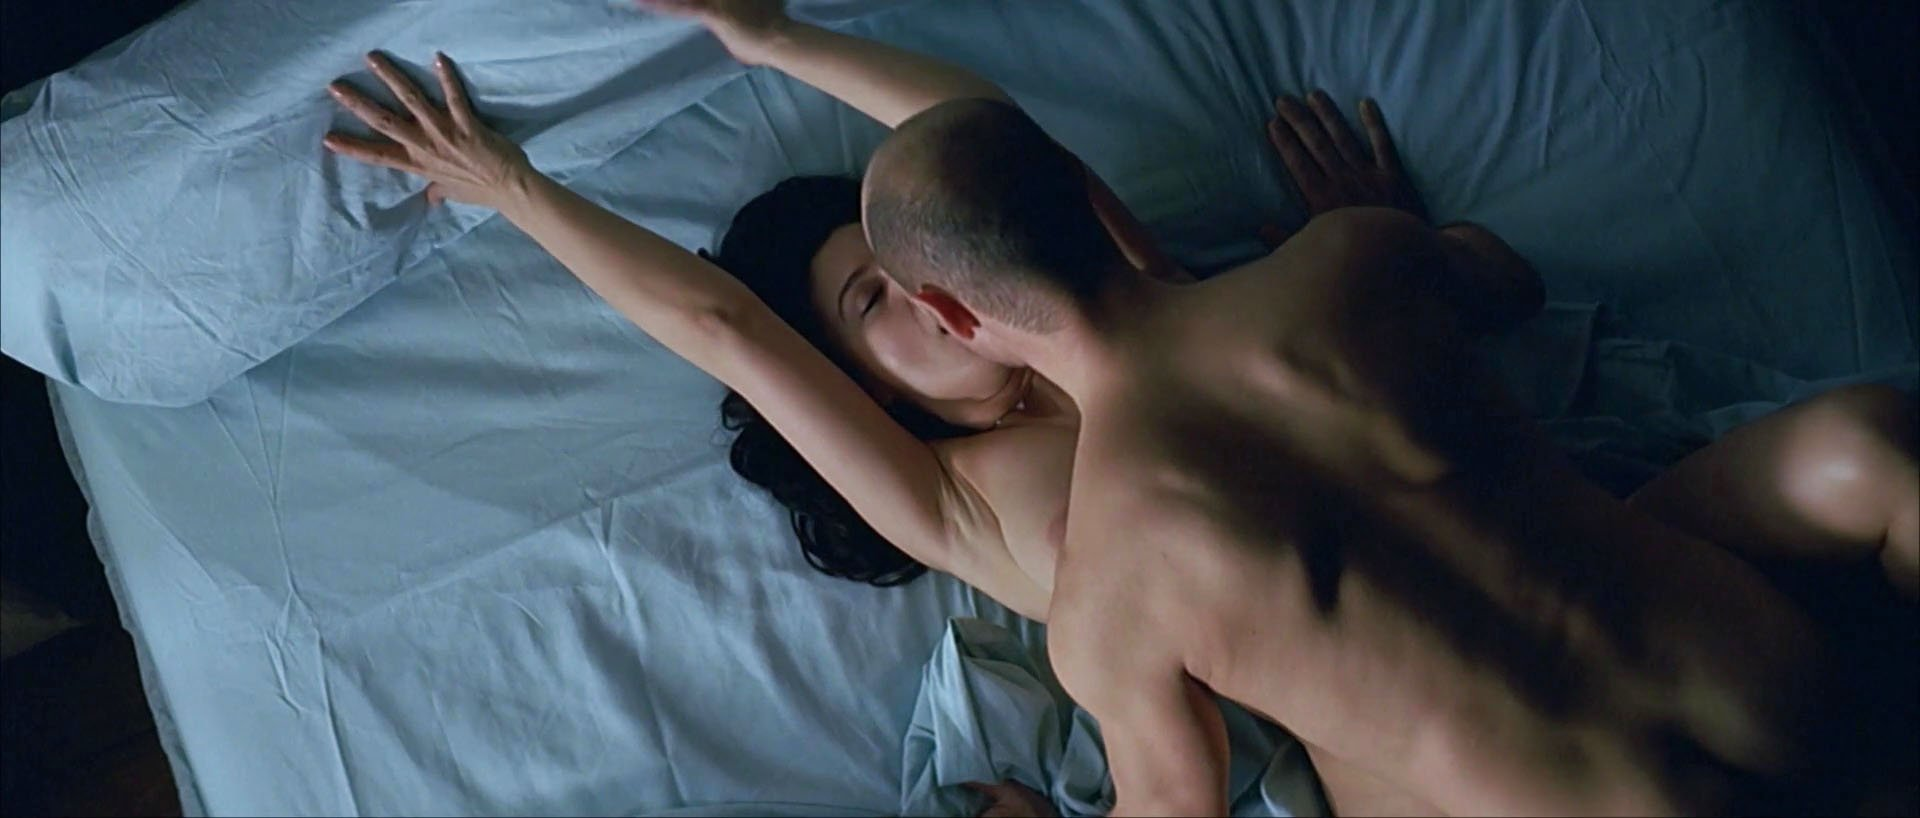 Monica Bellucci nude - How Much Do You Love Me (2005)